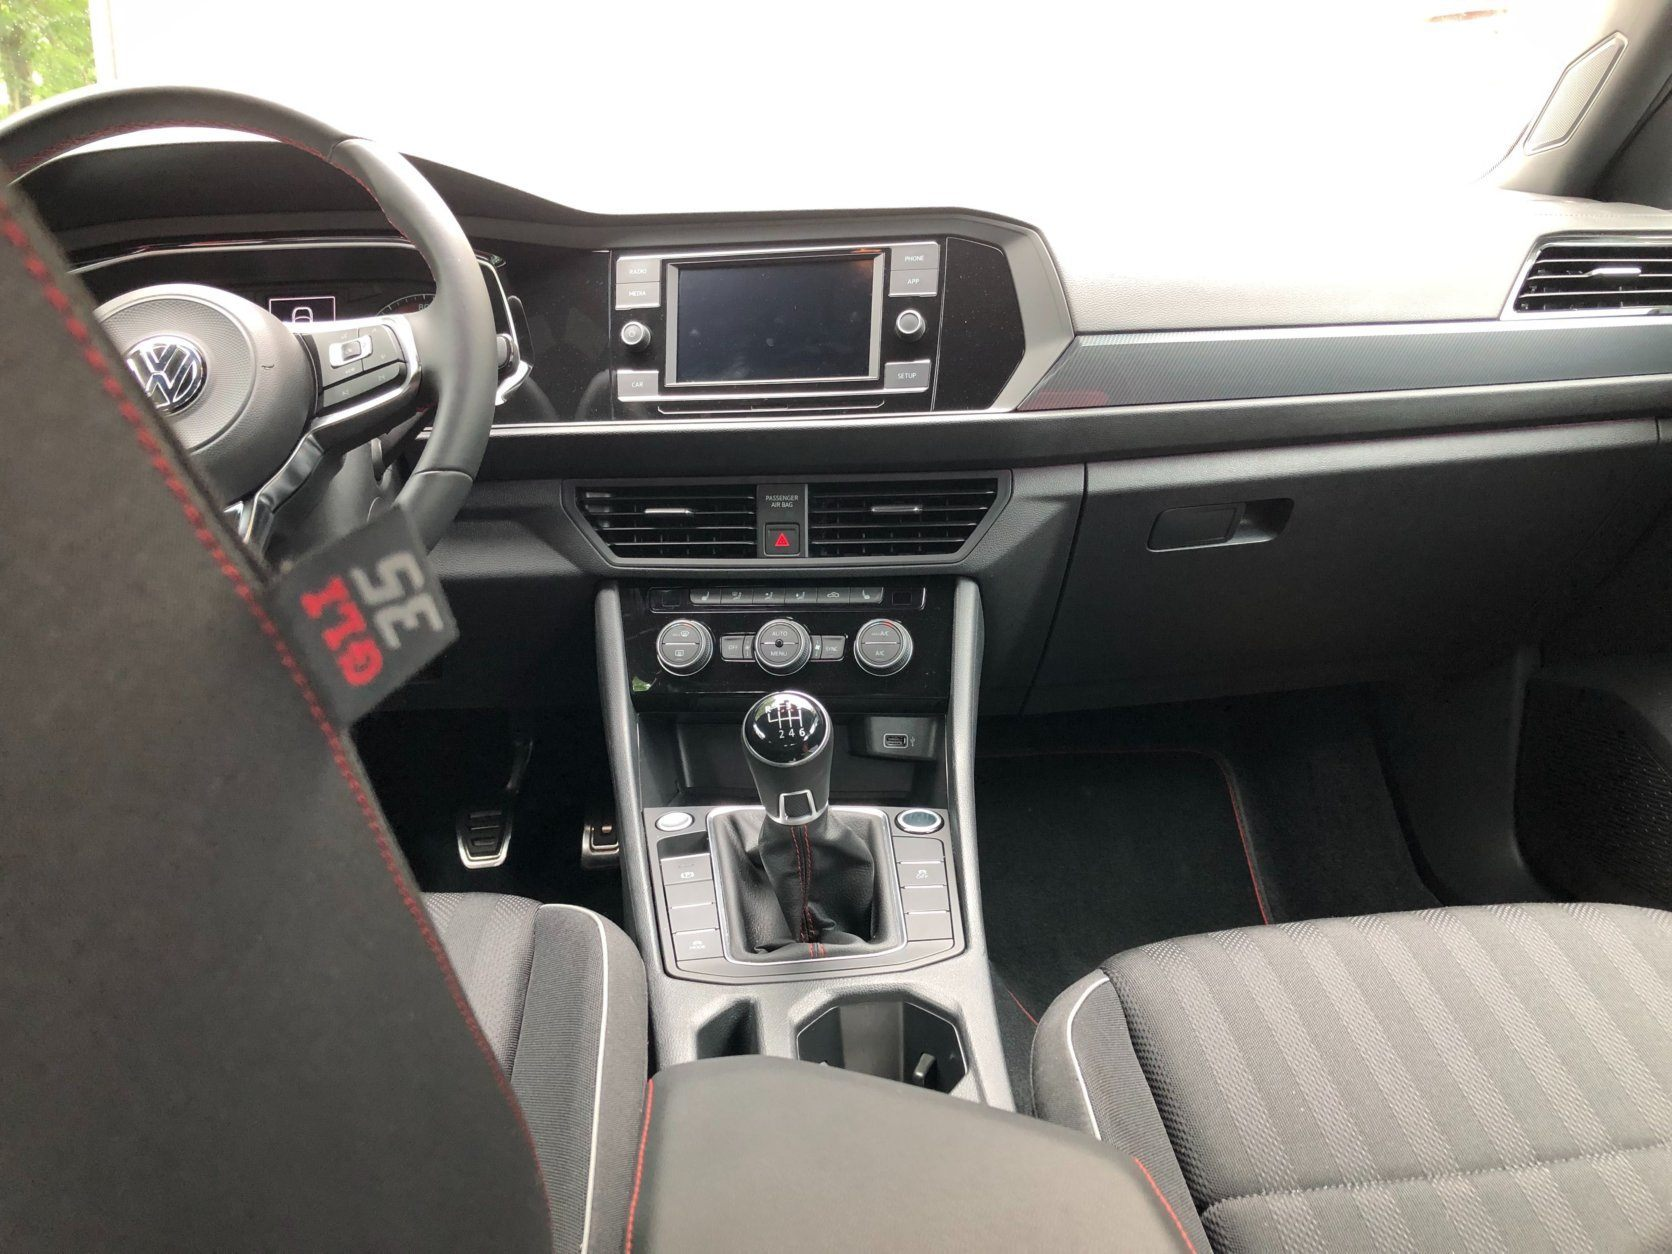 <p>Inside, the 2019 VW Jetta GLI is more German with lots of dark colors like gray and black. The materials seem like a higher caliber with the redesign this year. They have a high-quality feel when you touch them and less built-to-price.</p> <p>The GLI interior has some cool touches like the sport flat-bottom steering wheel that feels solid in your hands.</p> <p>The usual austere interior has some bright aluminum pedals and red stitching on the shifter, steering wheel and seats that make the interior pop. The cloth sport seats provide nice comfort and the heated seats work well.</p> <p>Those seats don't provide the best support when you are hitting those fast back roads; you tend to slide around a bit.</p>